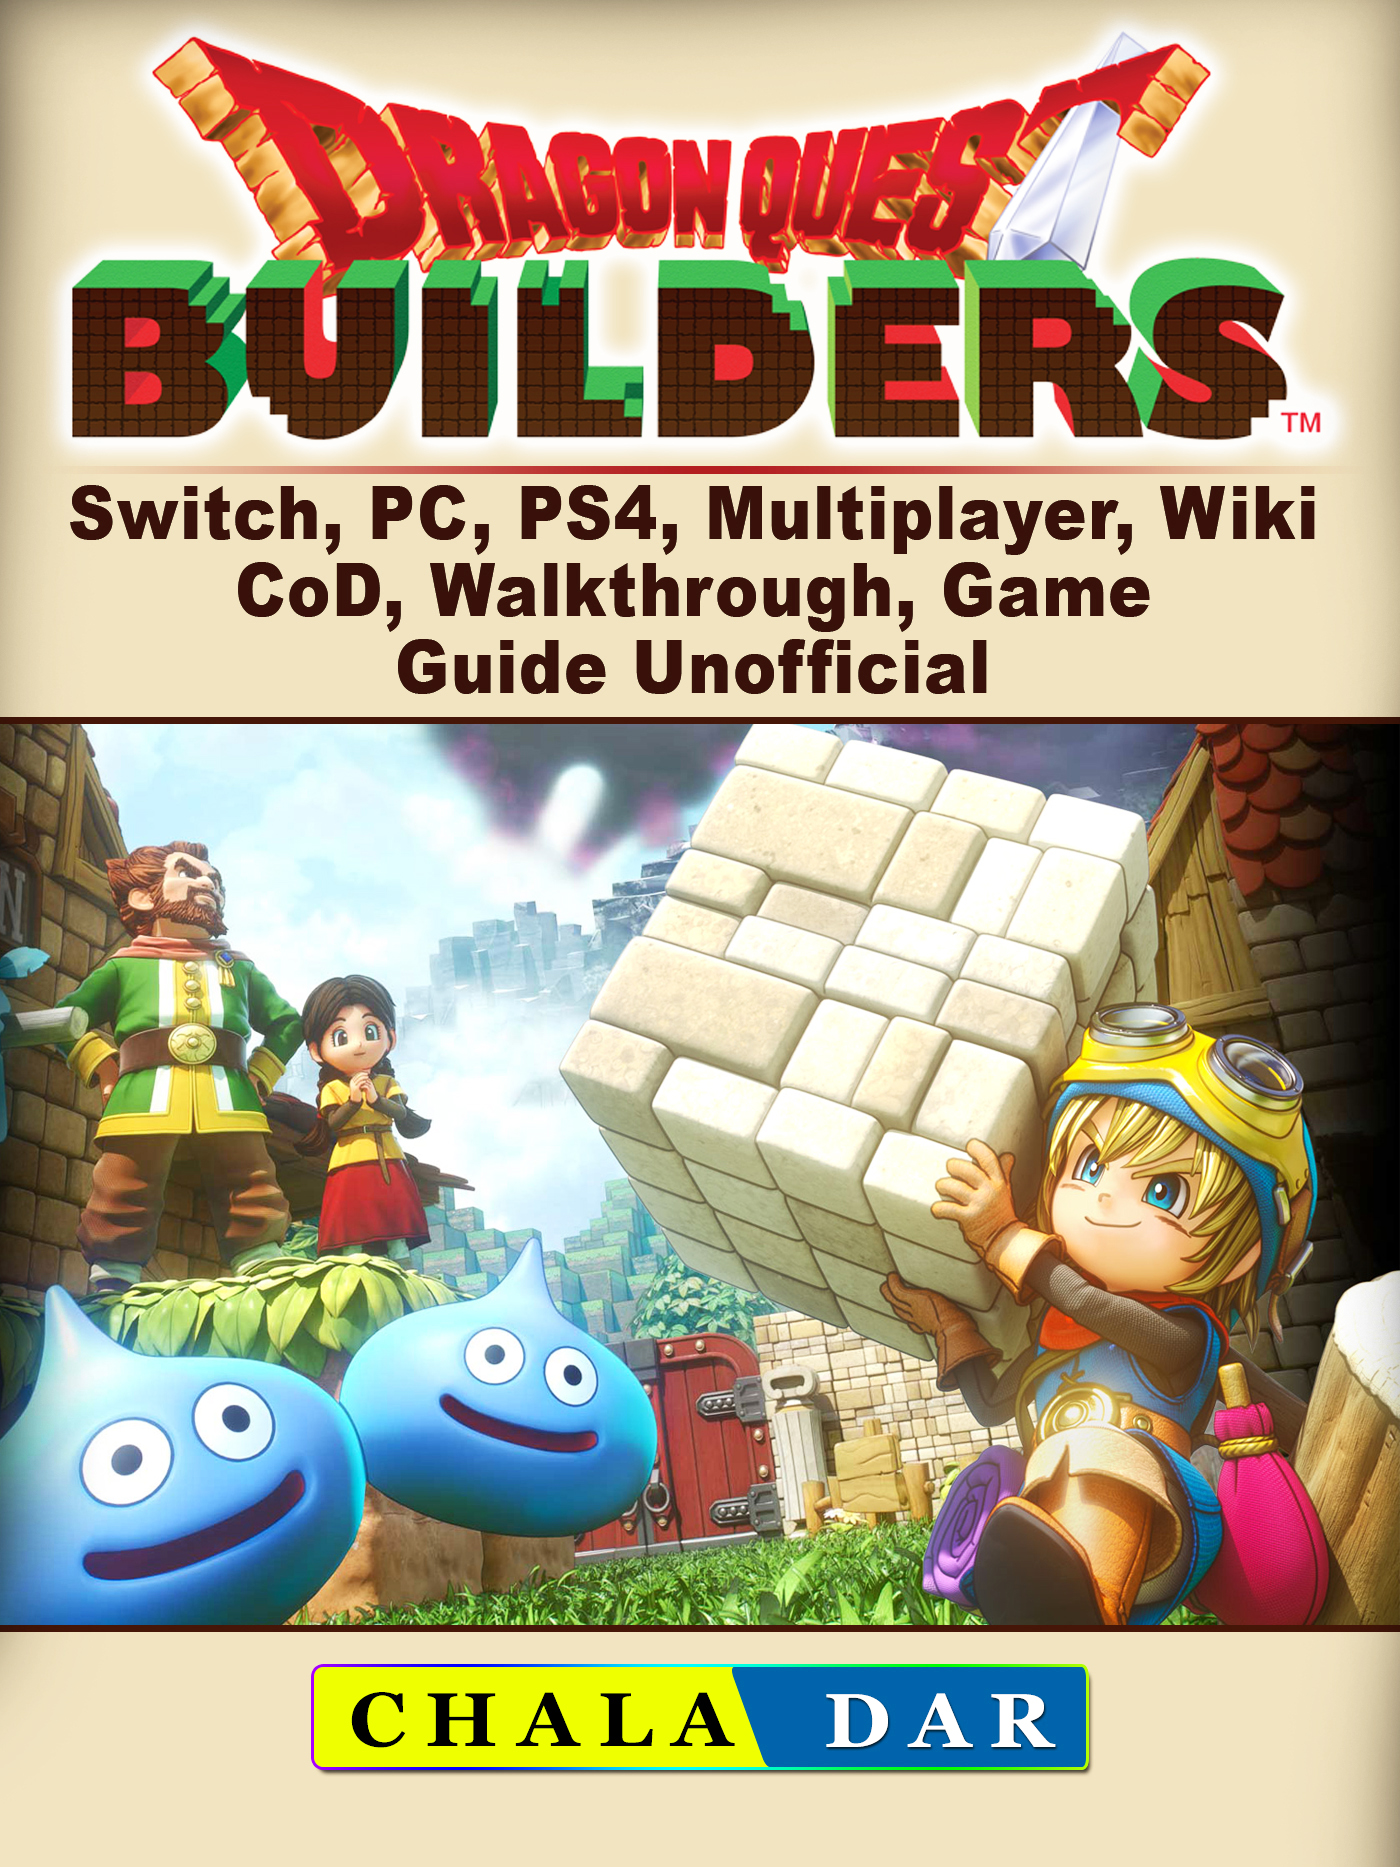 Dragon Quest Builders, Switch, PC, PS4, Multiplayer, Wiki, CoD, Walkthrough, Game Guide Unofficial